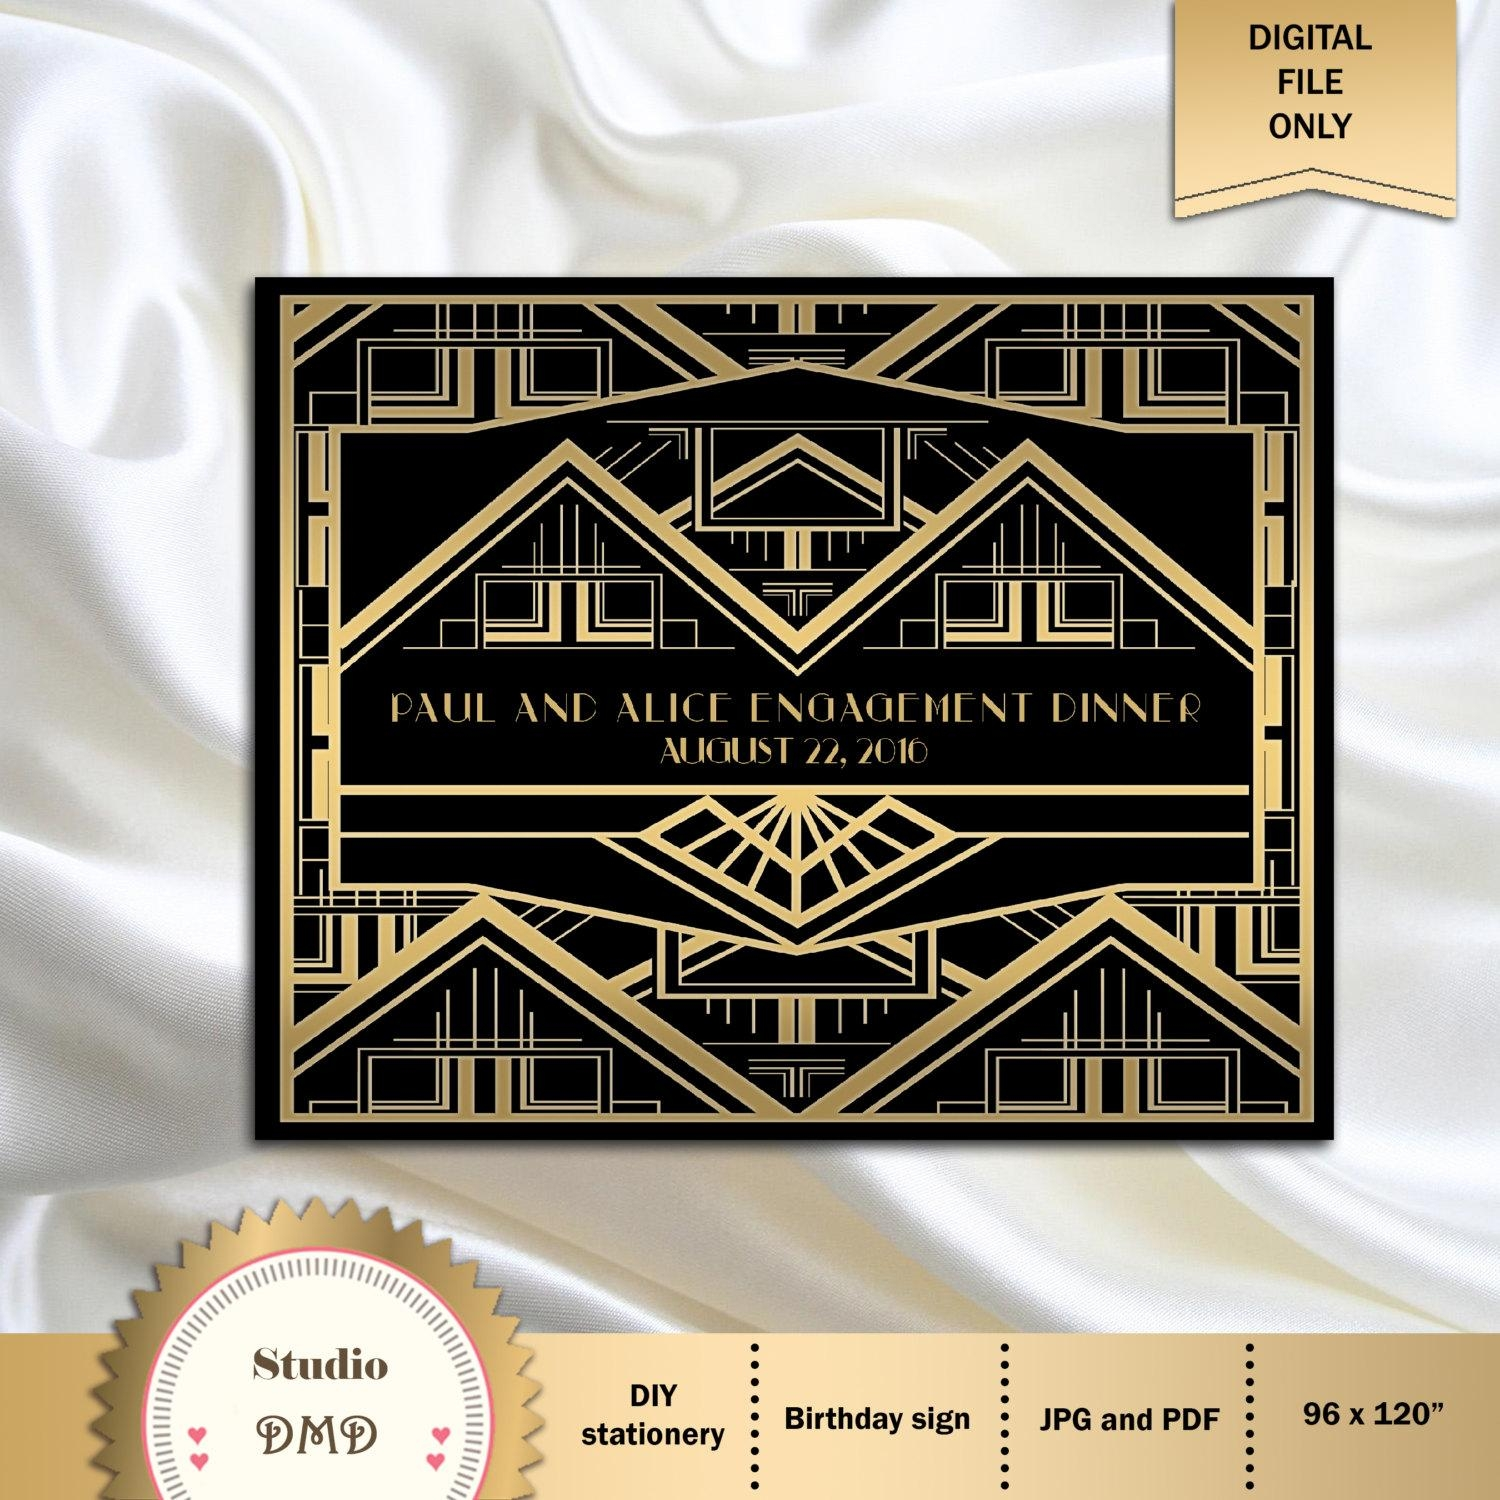 Great Gatsby Art Deco Backdrop For Photos Wall Decor Party Regarding Great Gatsby Wall Art (Image 7 of 20)